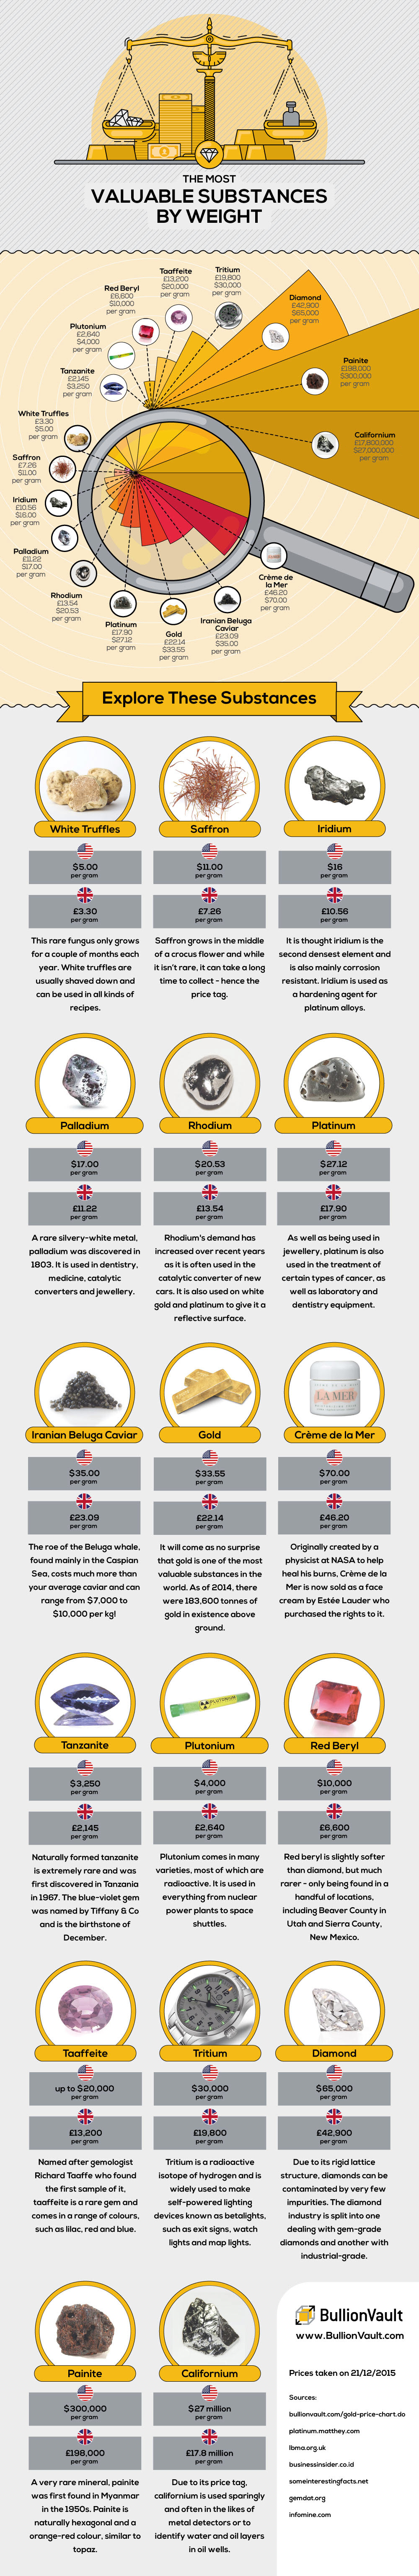 Most Valuable Substances Infographic